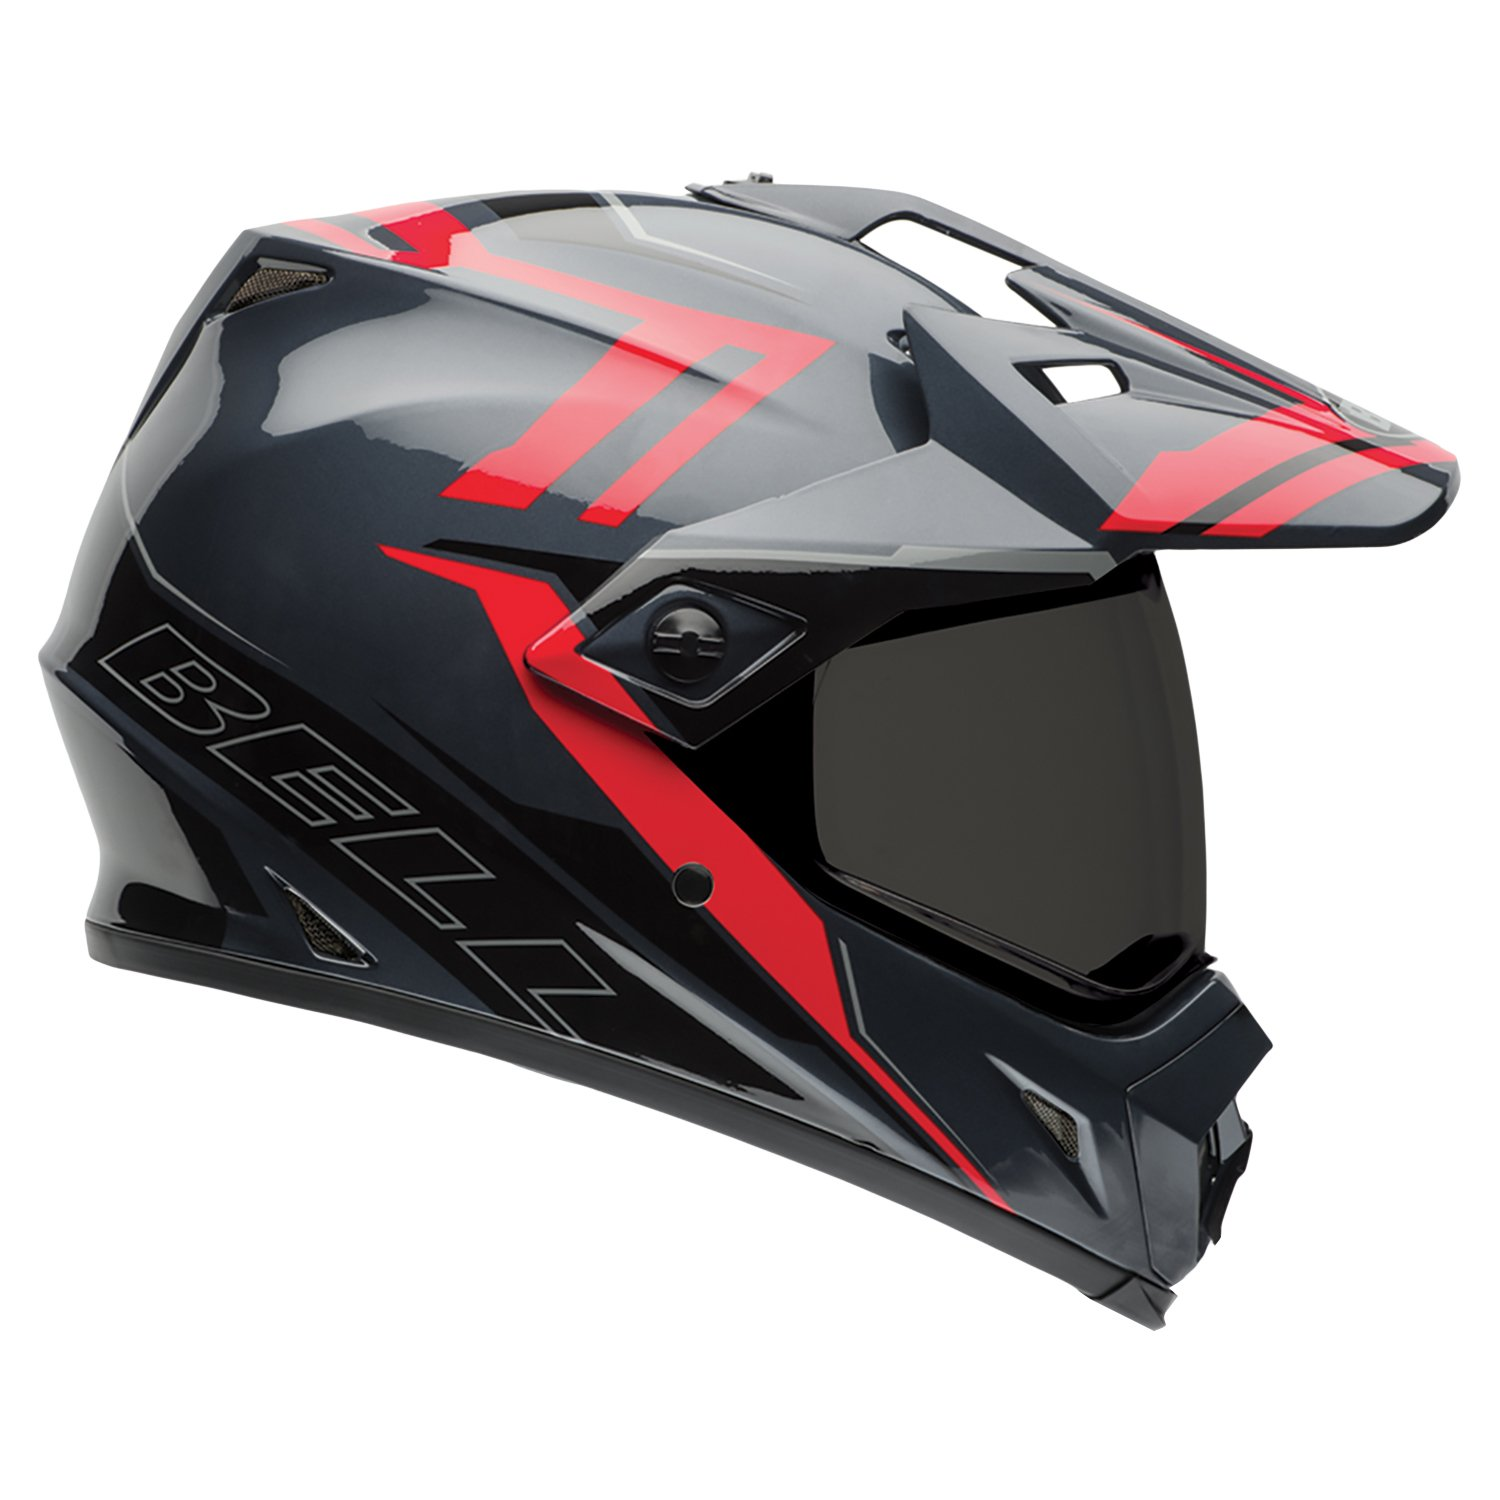 Bell Caschi MX 2015 MX-9 SolidHigh Visiblity Adventure Adult Casco, Barricade Rosso, XS